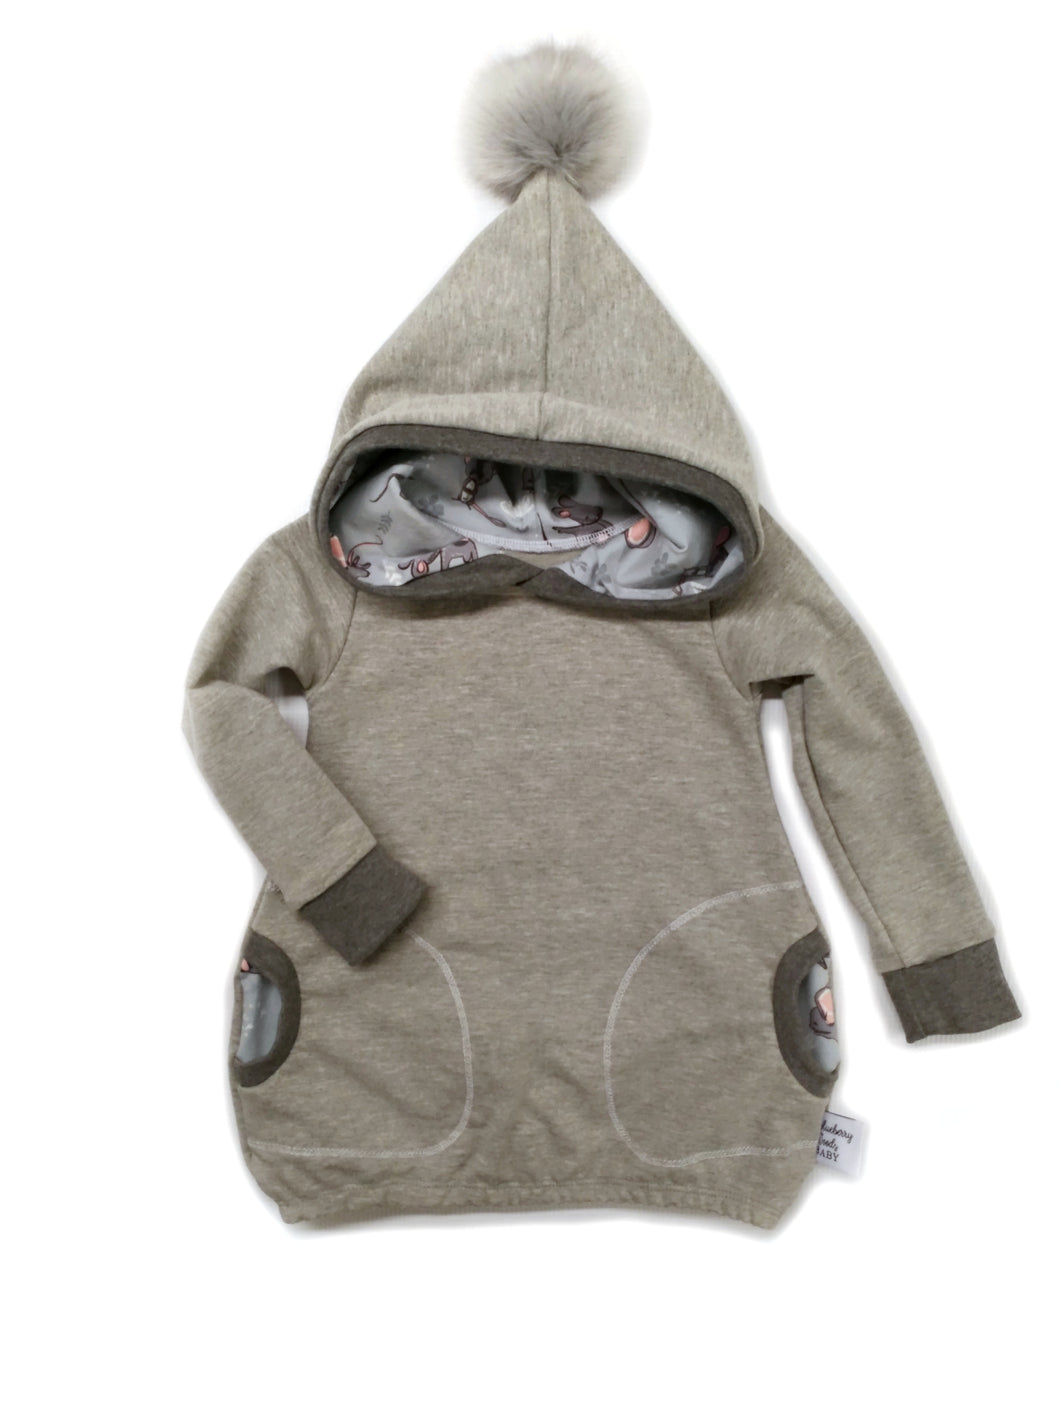 Hooded Tunic - Grey Mouse - size 12-18 months